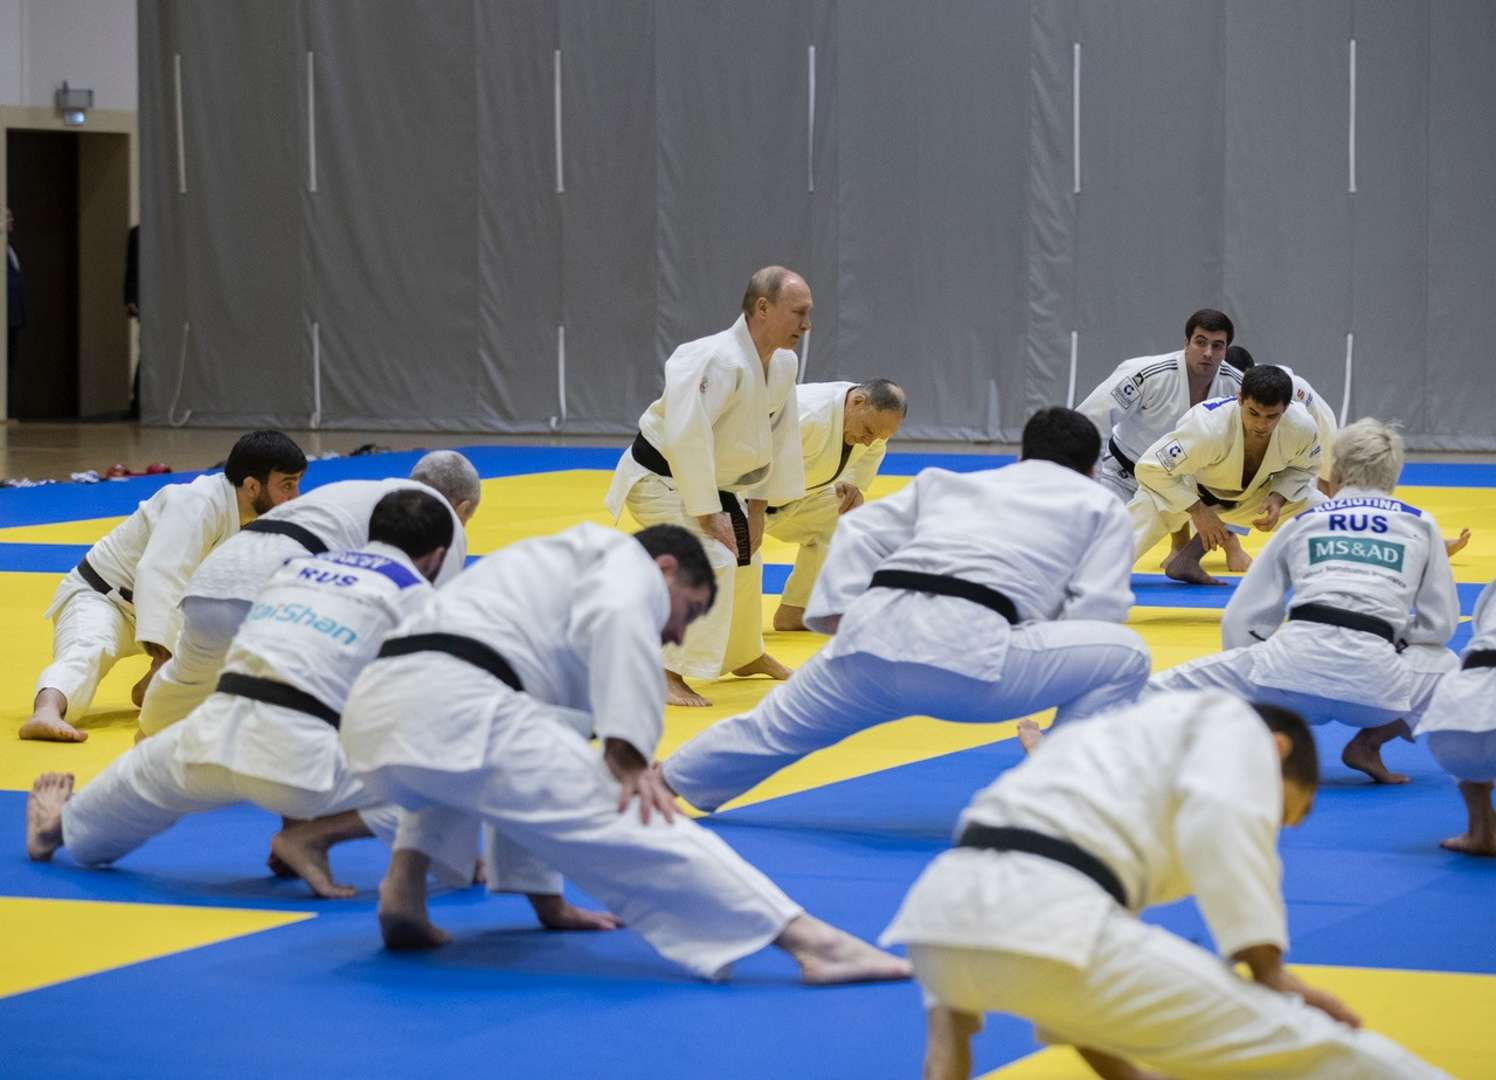 Russian Federation President Vladimir Putin Trains With National Judo Team In Sochi Ijf Org